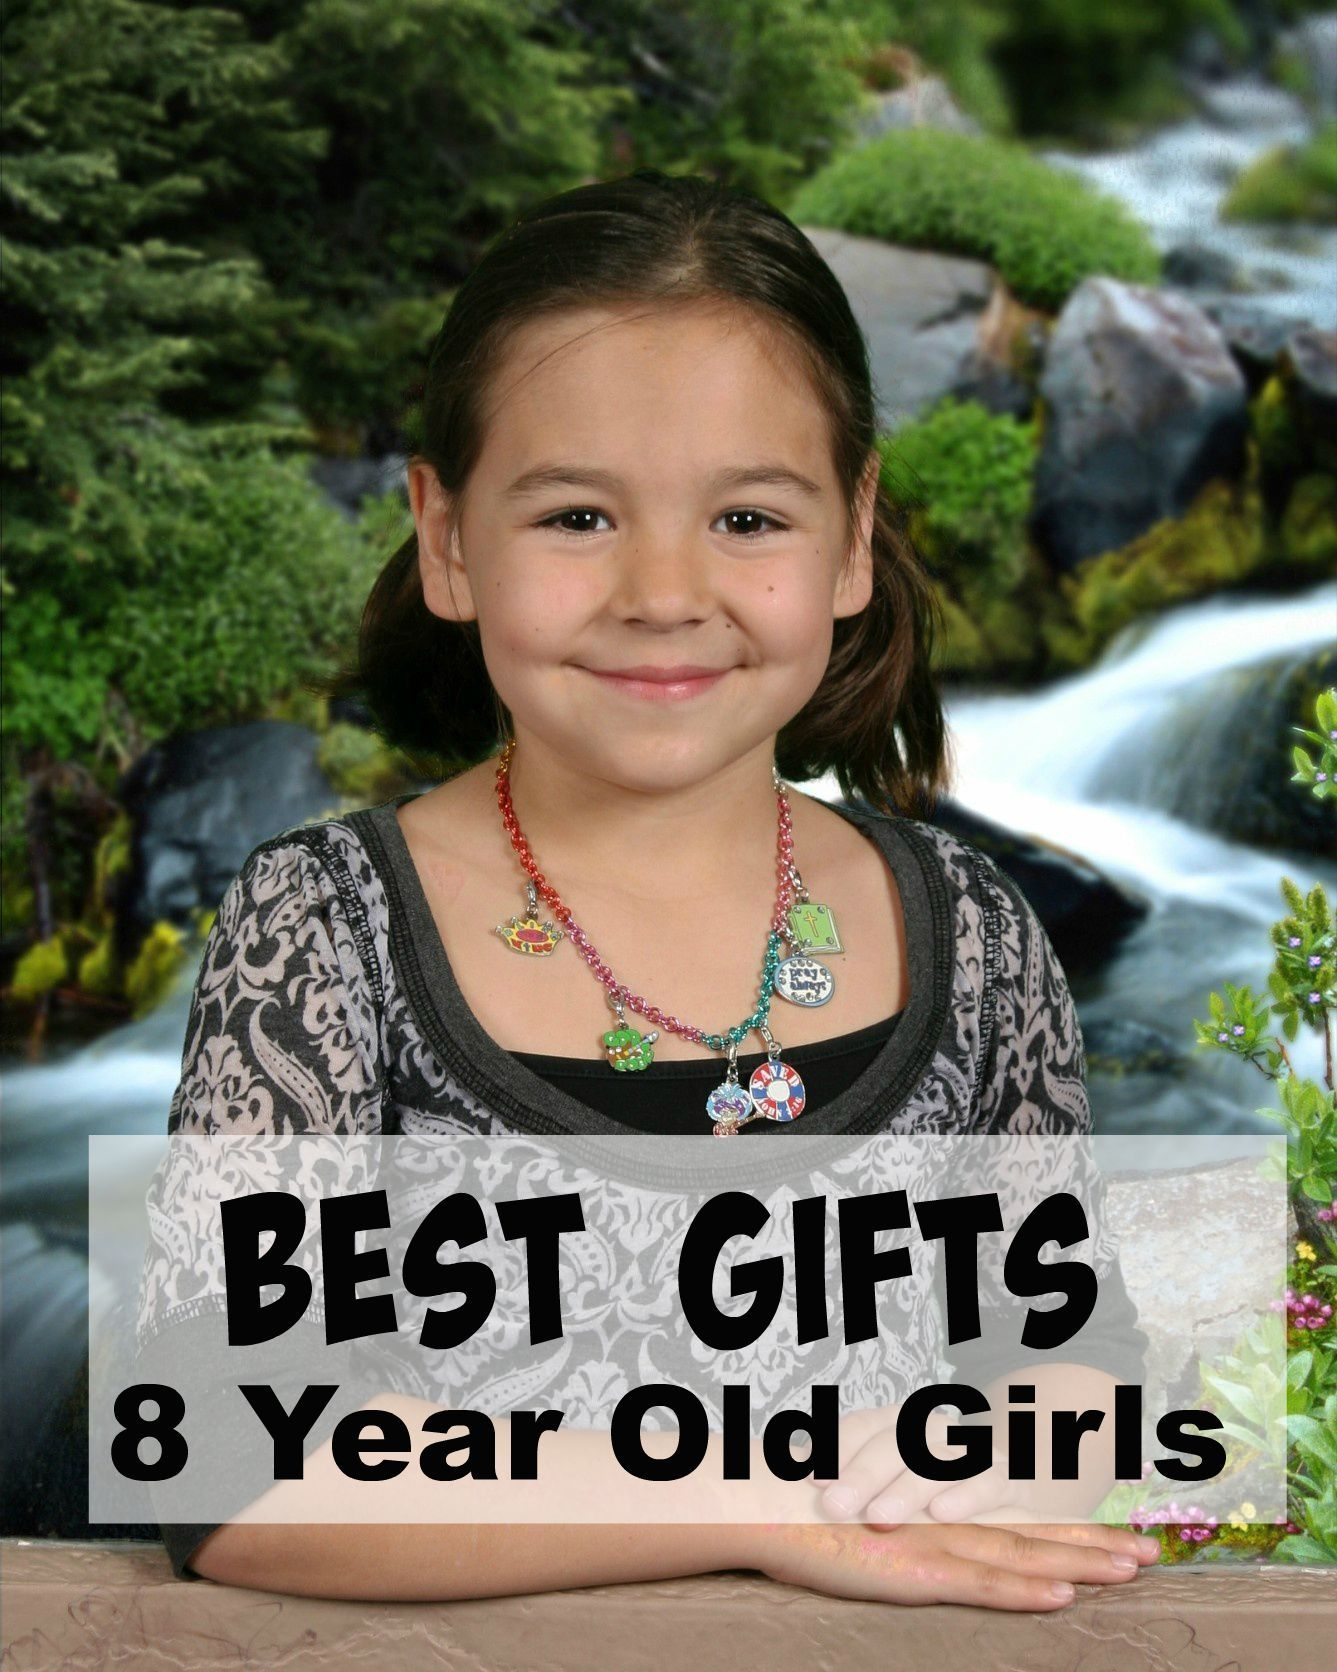 Really Cool Birthday Gift Ideas for 9 Year Old Girls